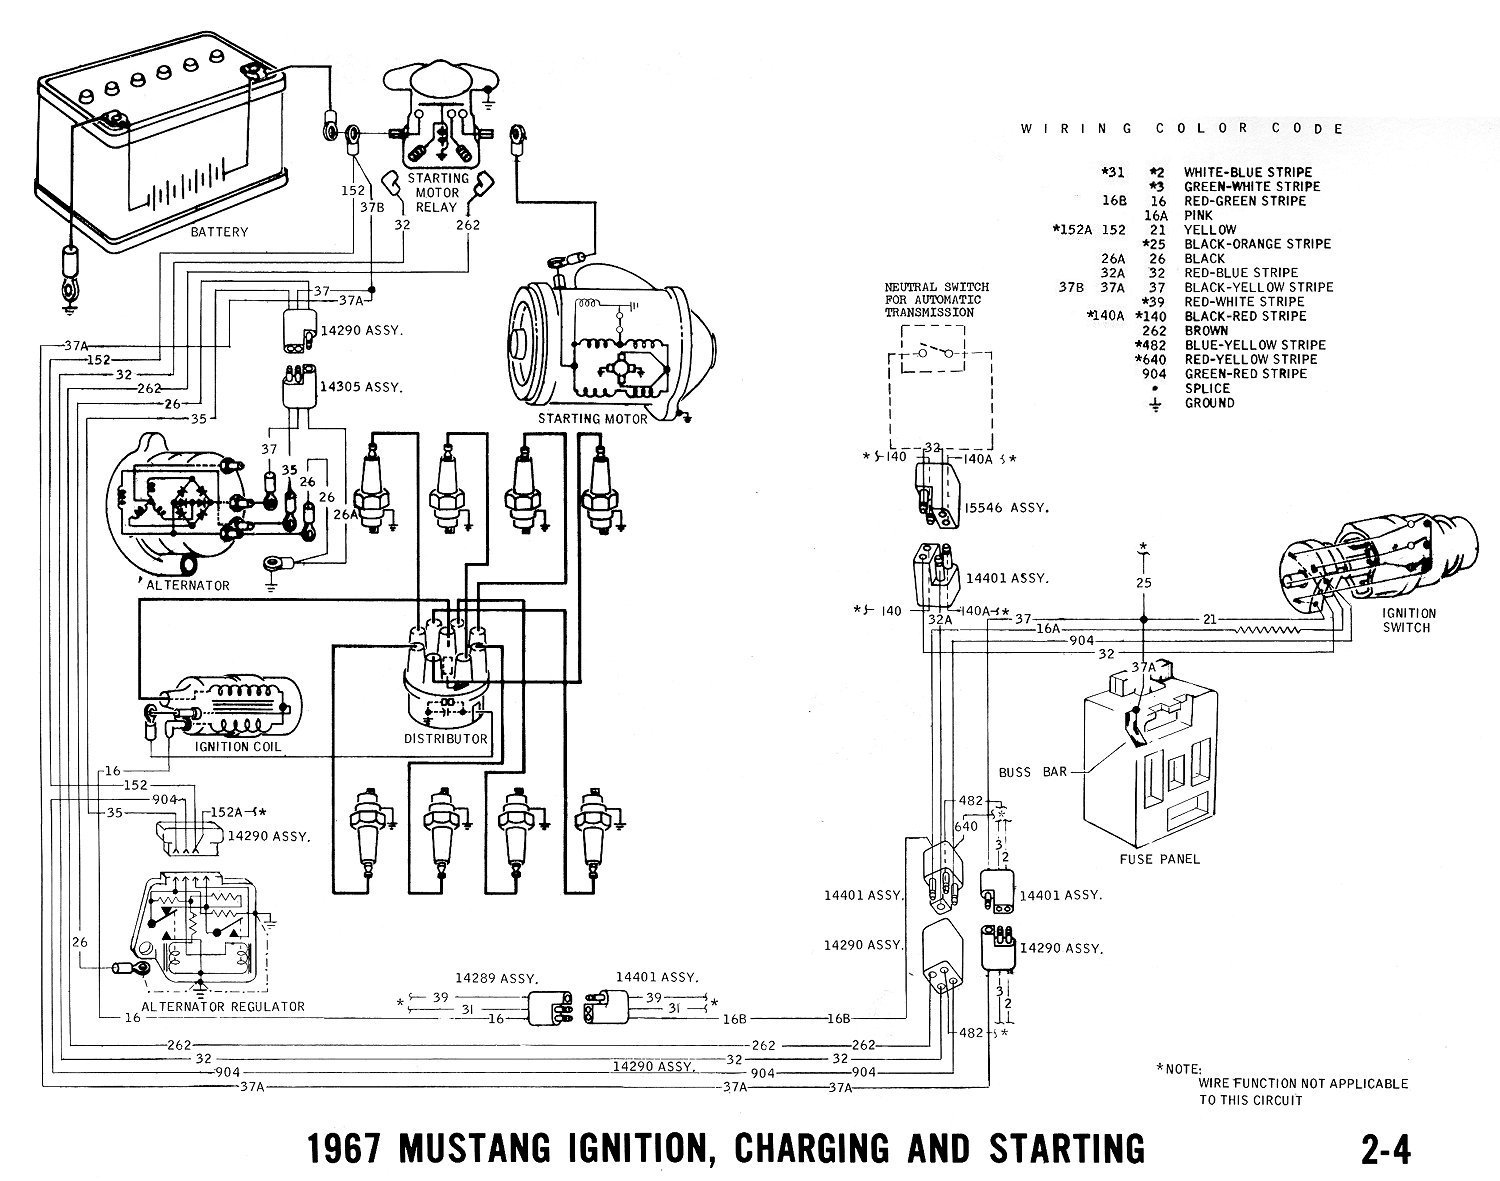 D Radio Noise Suppressing Capacitor Ignition on 1963 ford ranchero wiring diagram